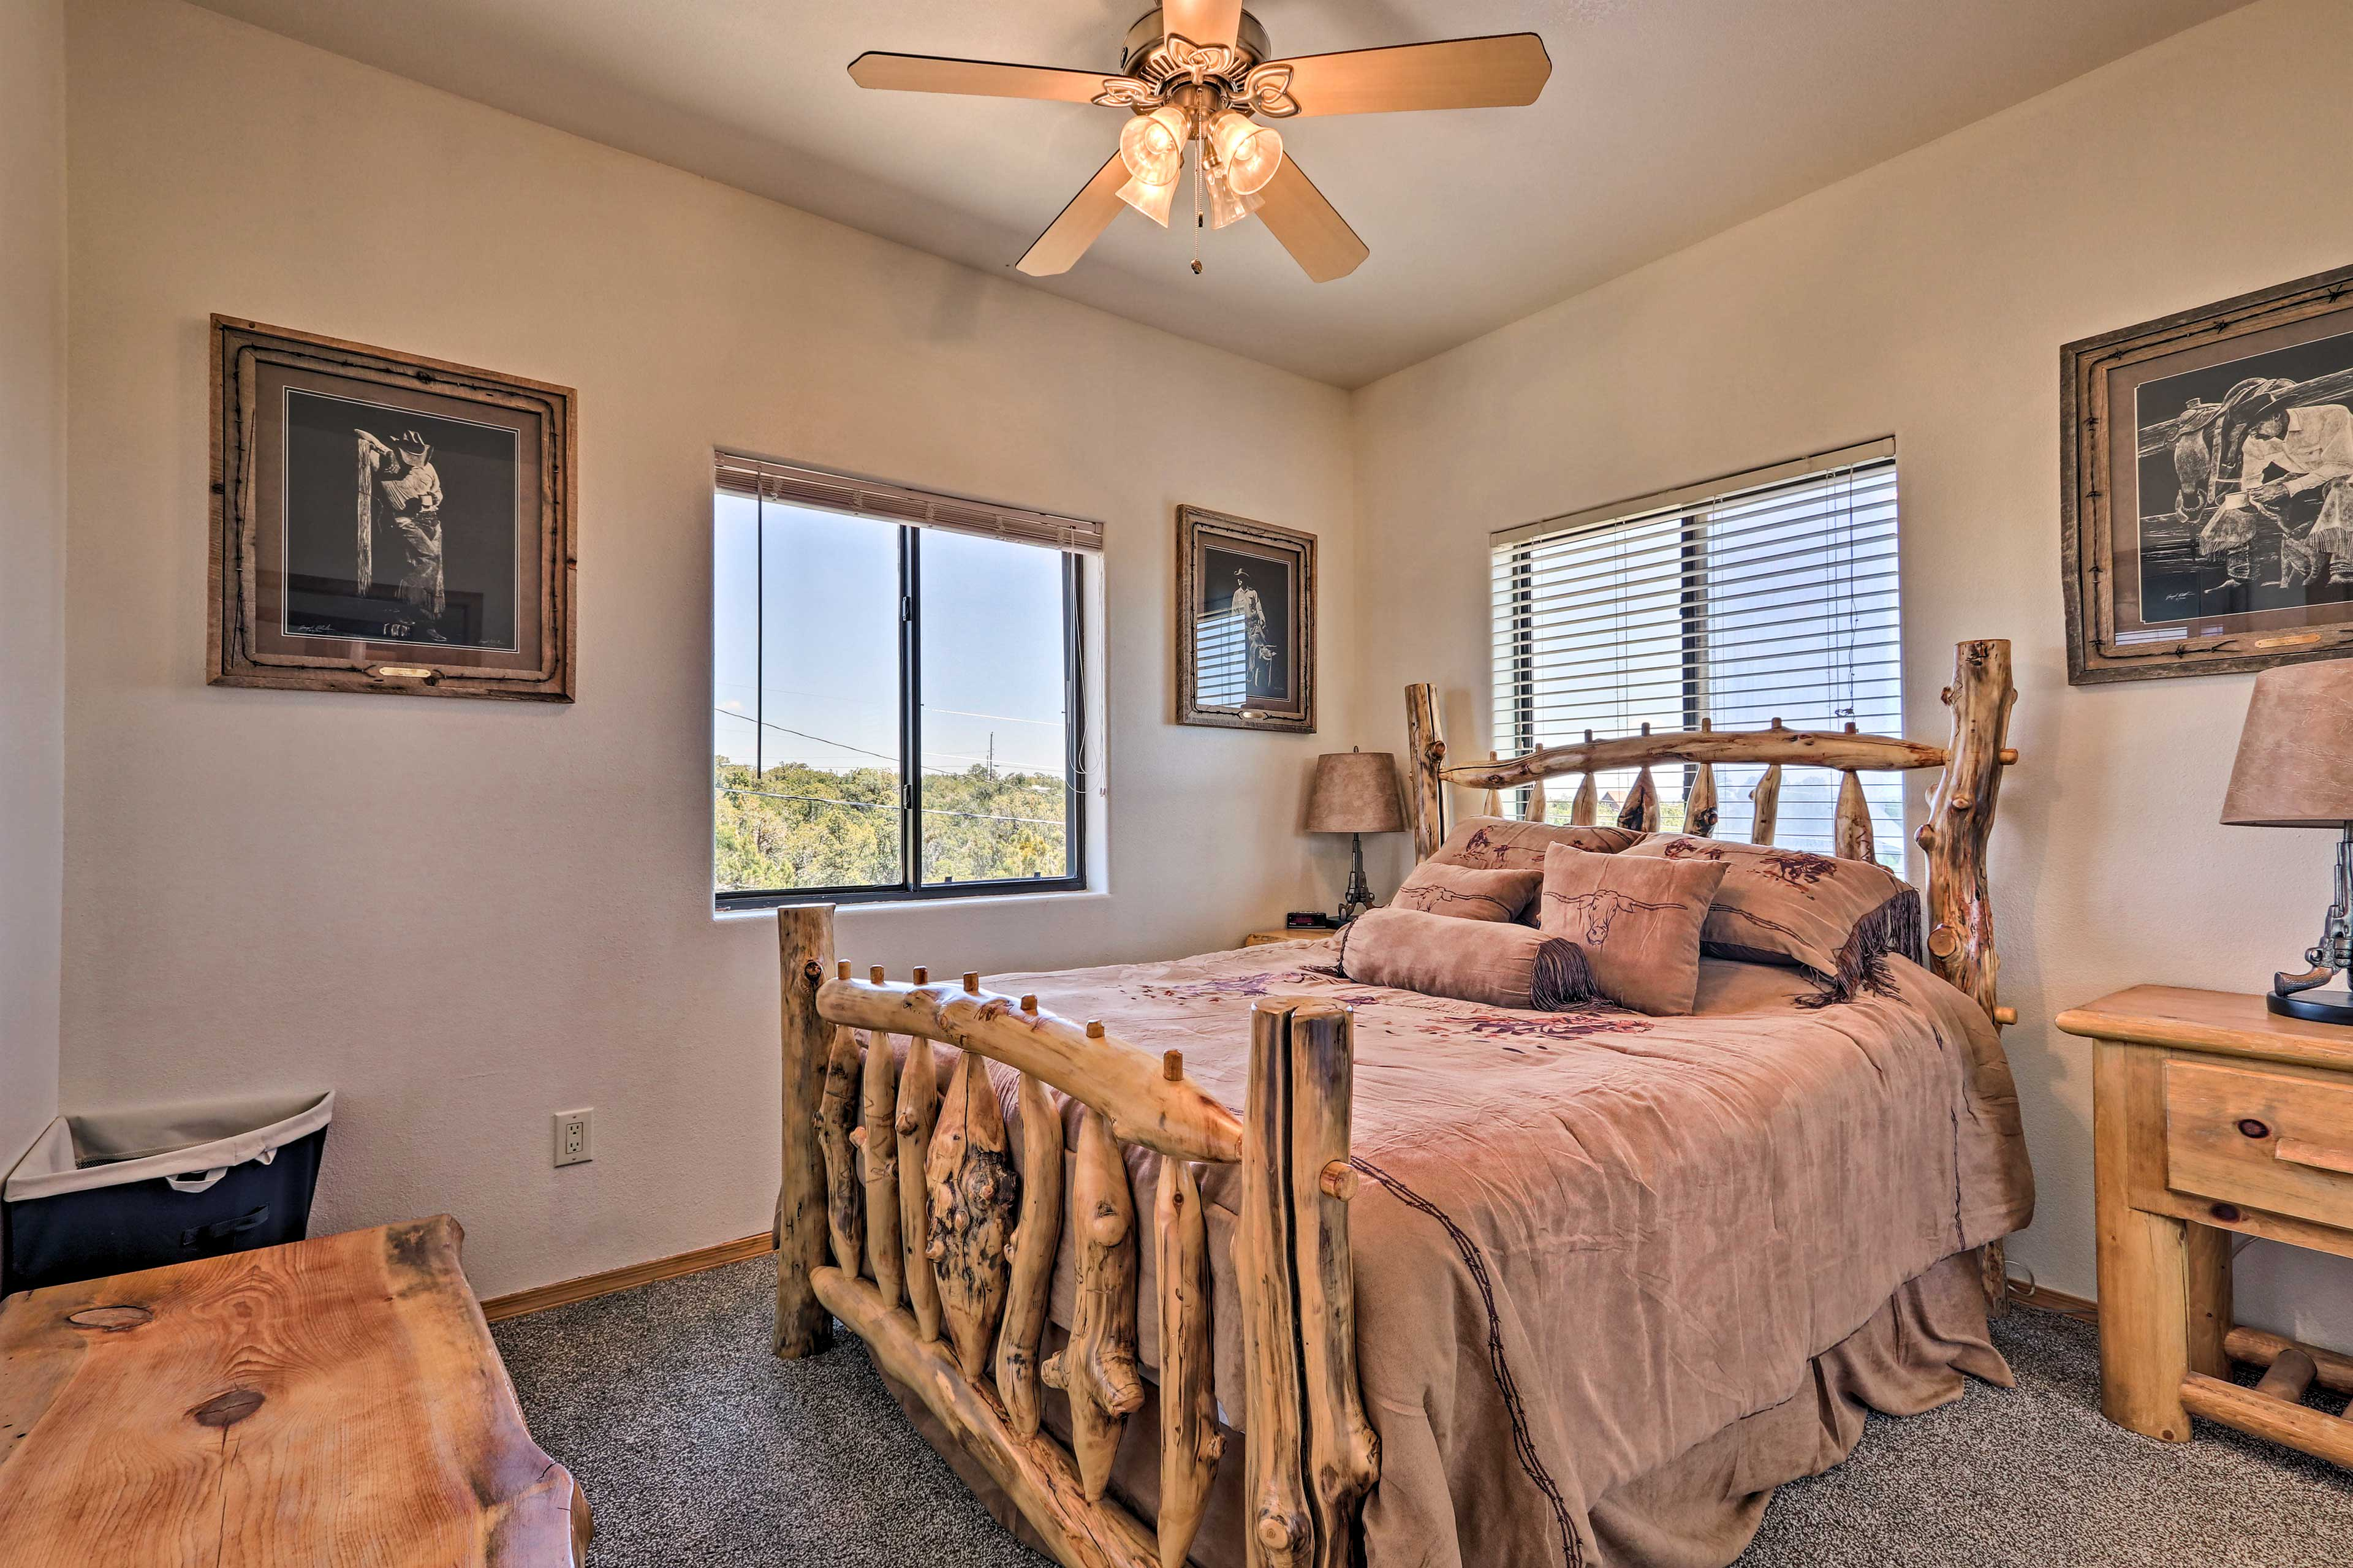 The 3rd bedroom features a queen bed for 2.